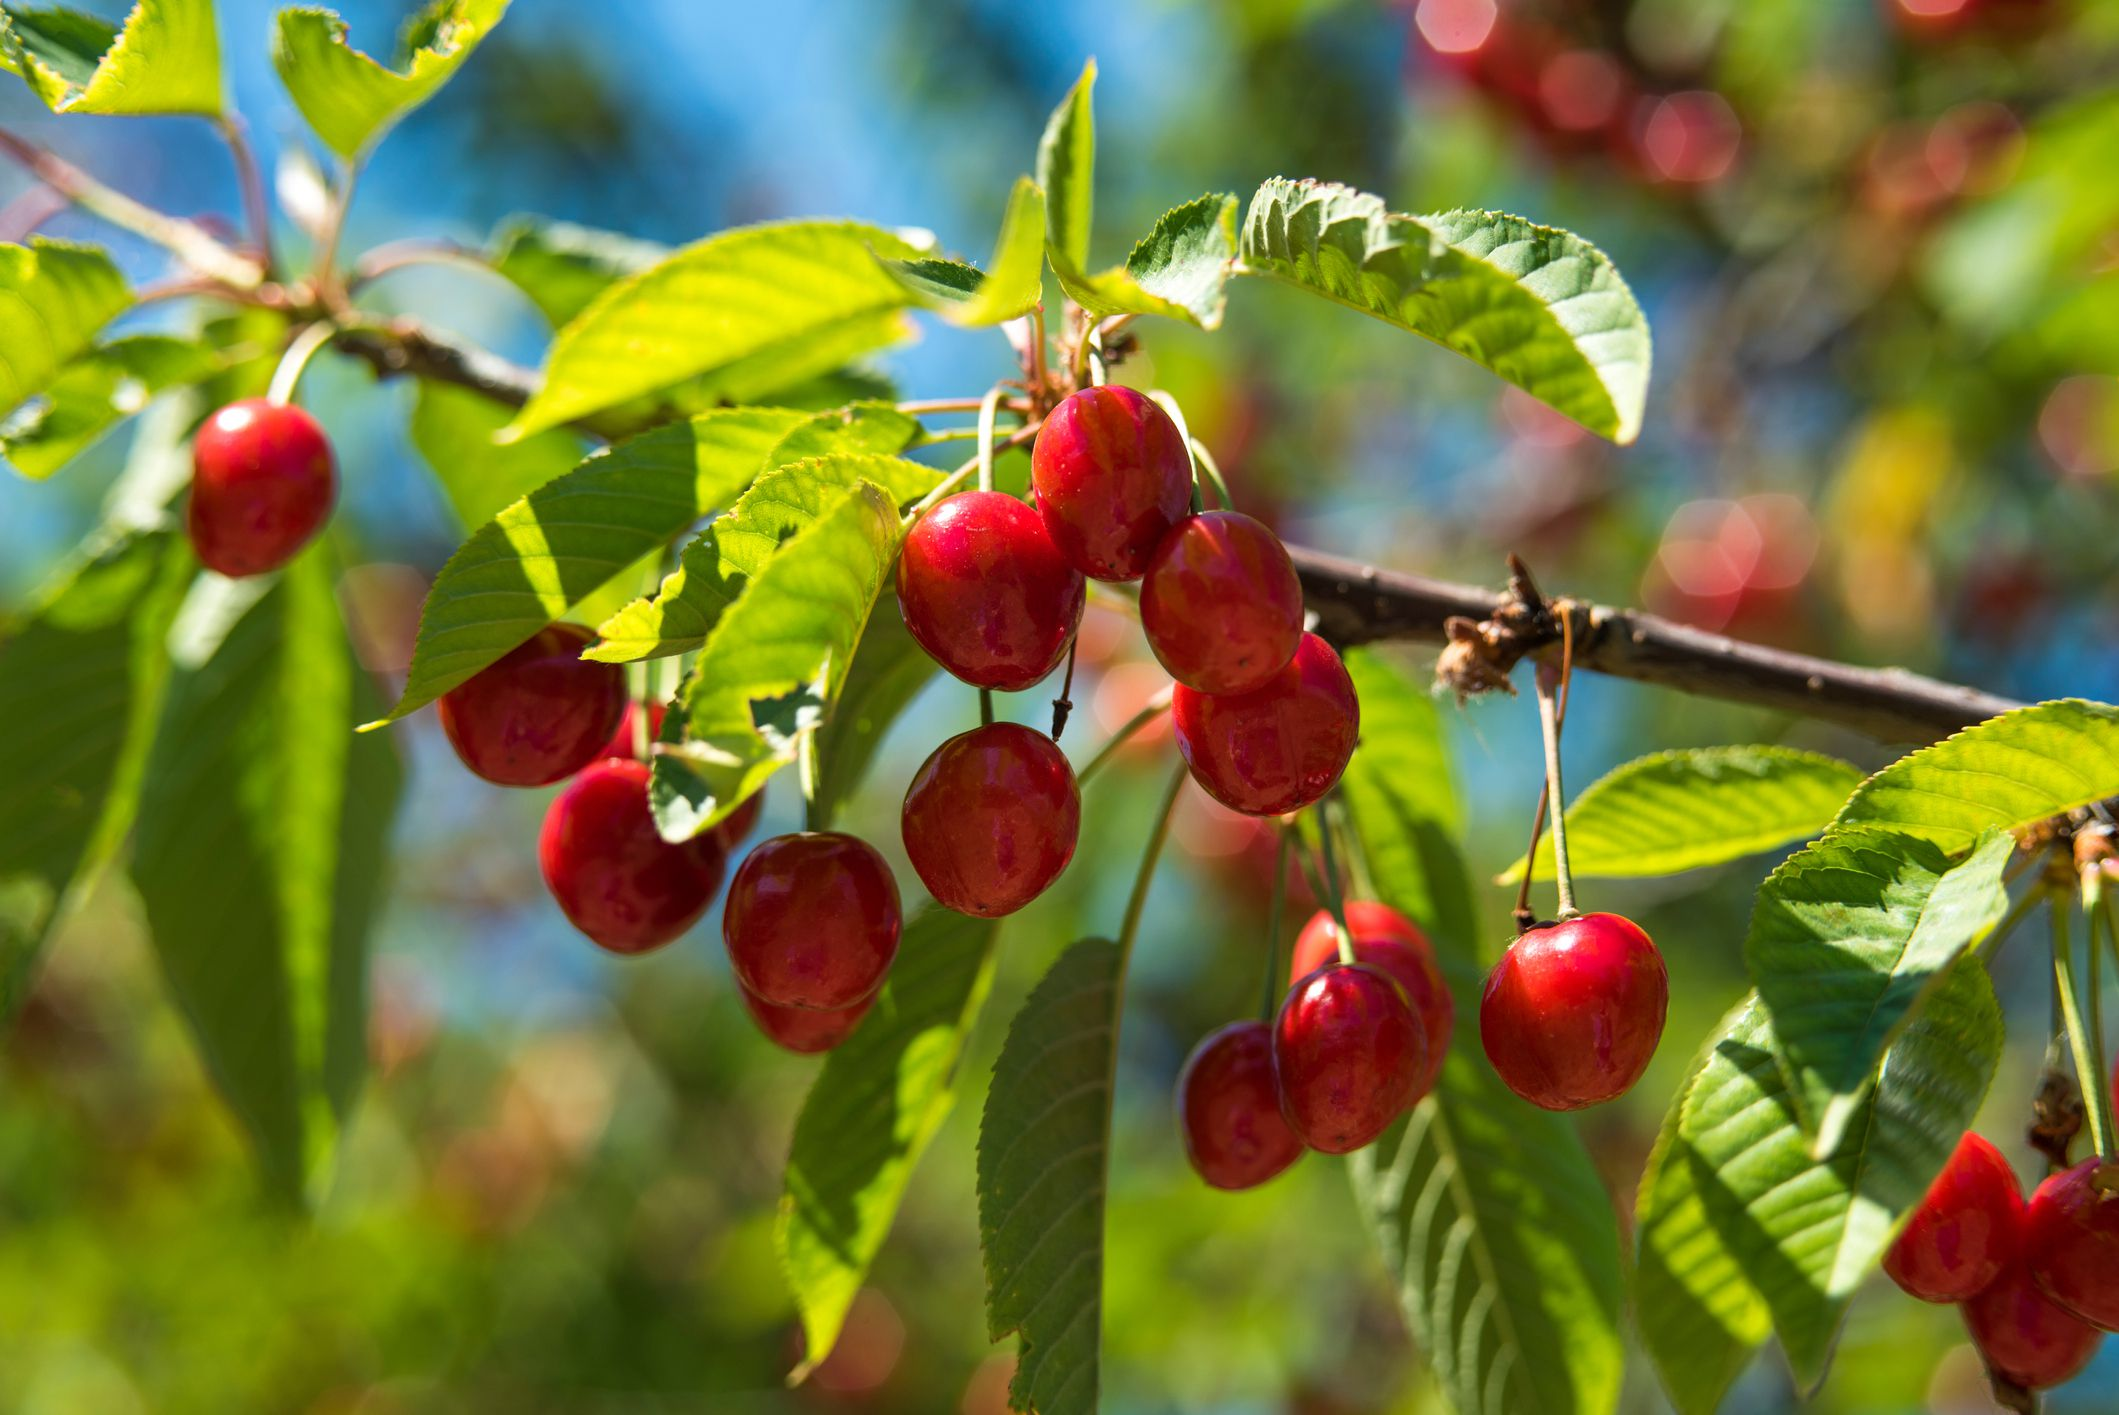 How to Grow a Cherry Tree from Seed